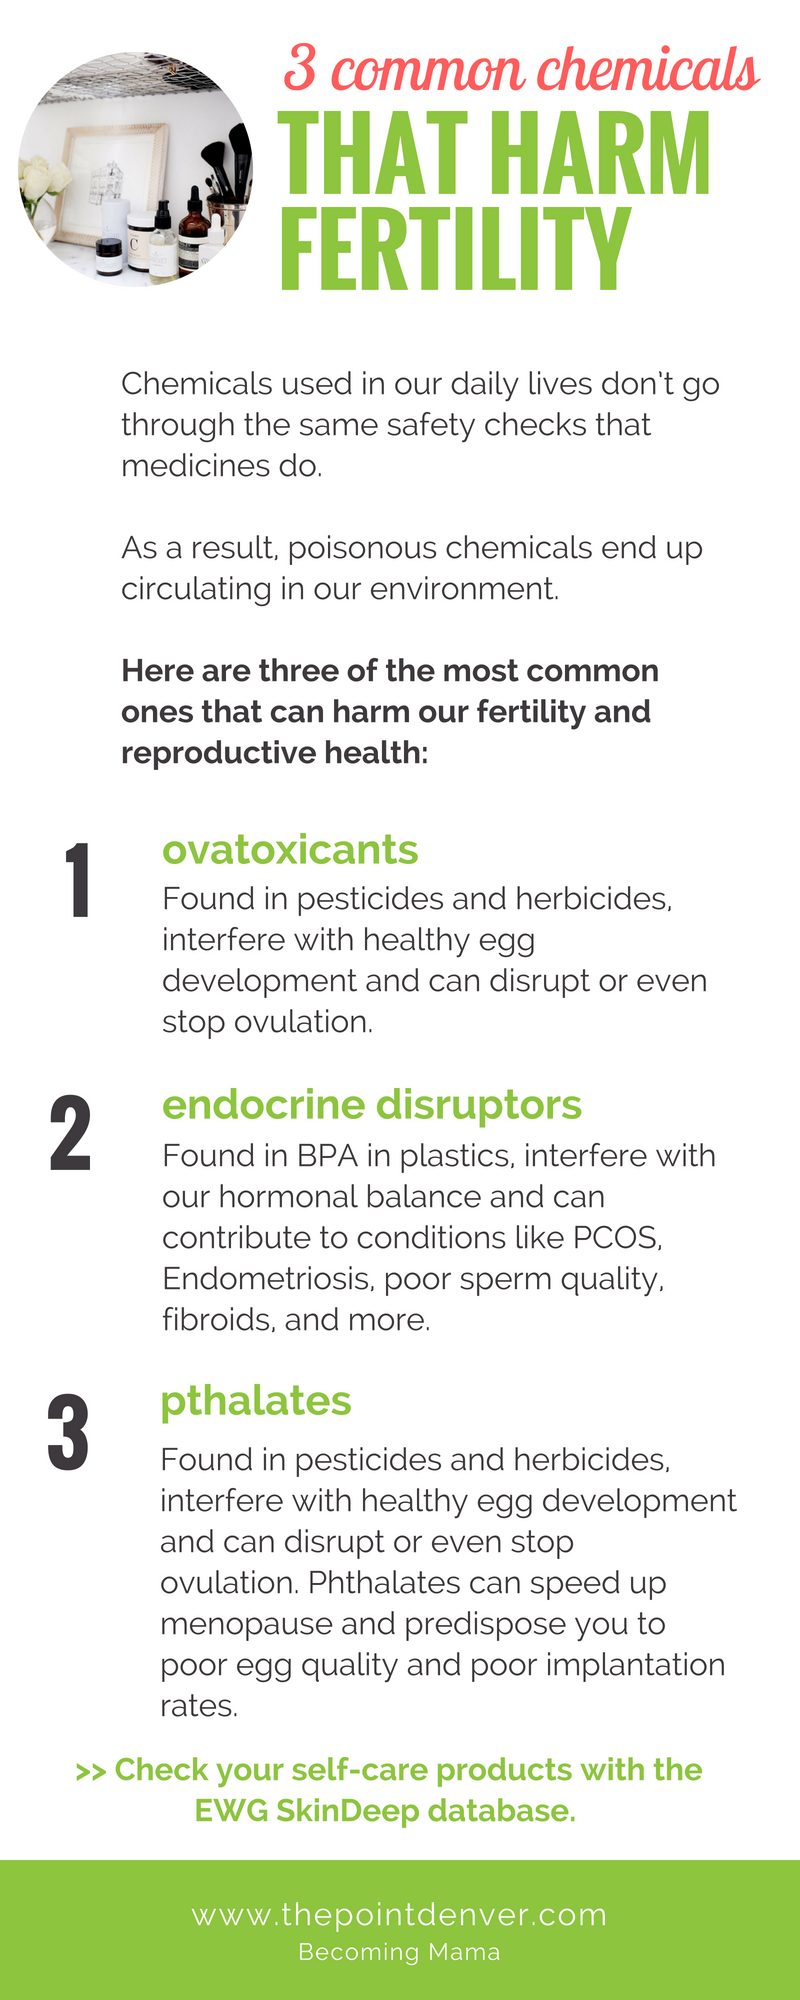 3 chemicals that harm fertility